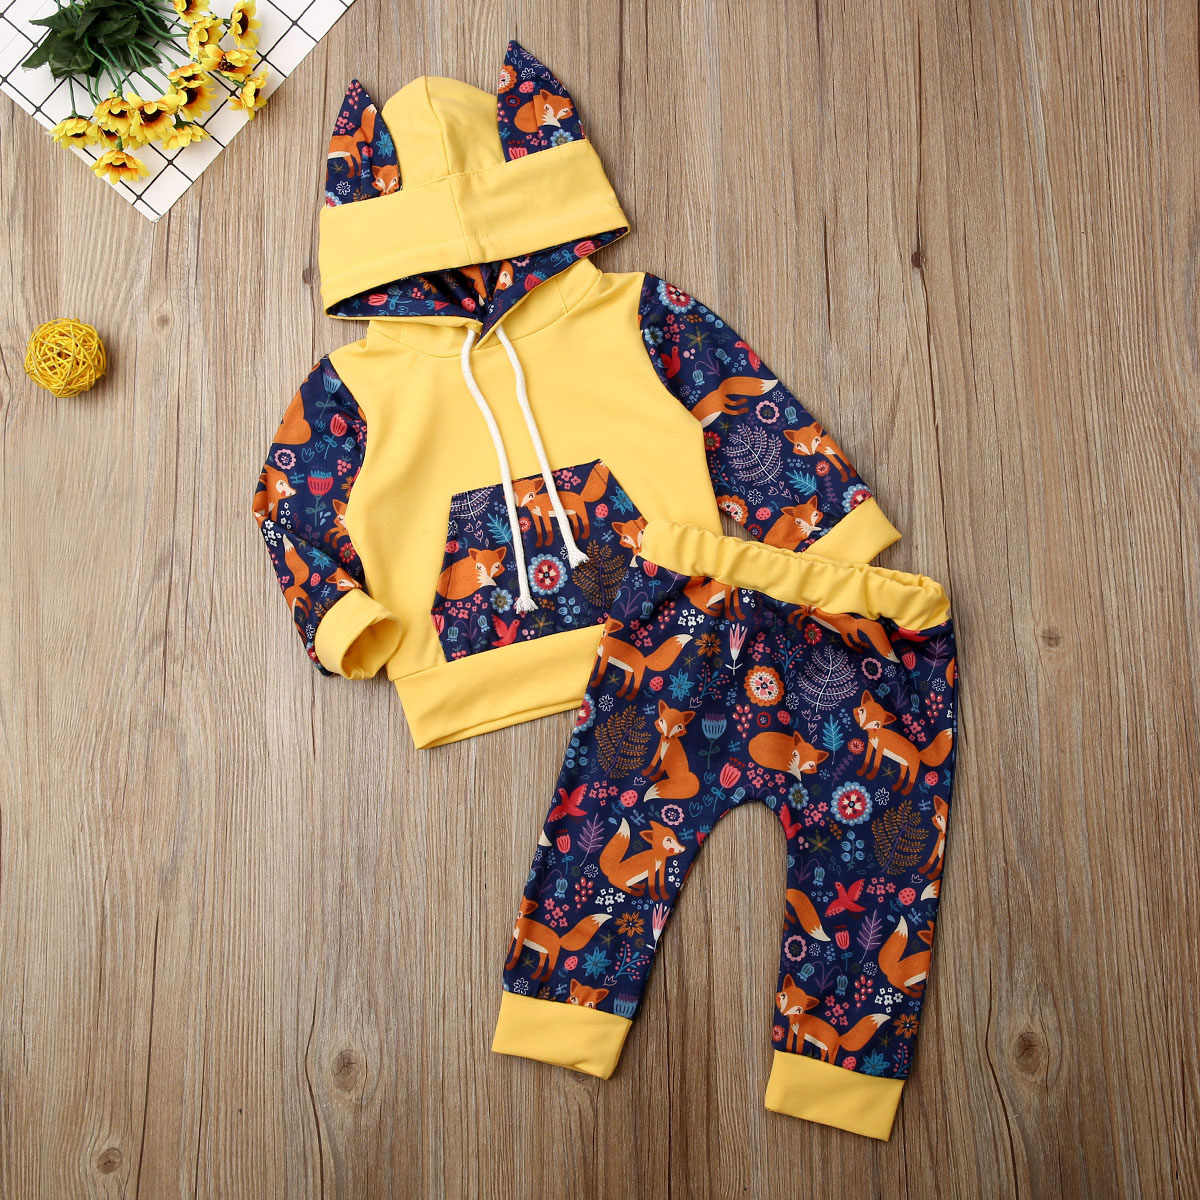 UK Cute Infant Toddler Baby Boy Clothes Fox Hooded Tops Sweatshirt Long Pants Outfits Baby Set Clothes 0-24 months